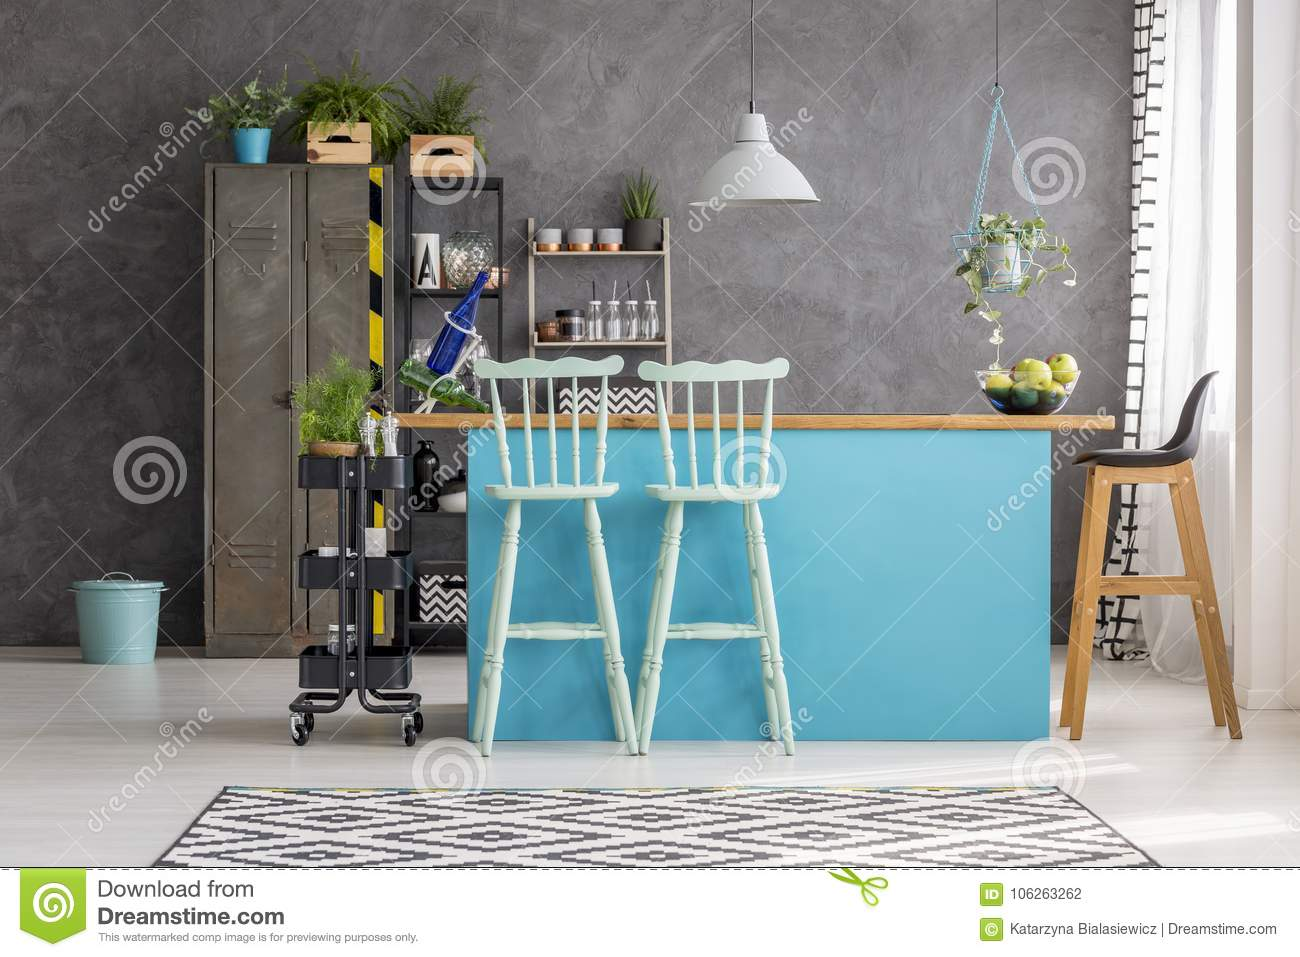 Wooden bar stools and blue dining table under lamp in room interior with grey wall metal locker and bin